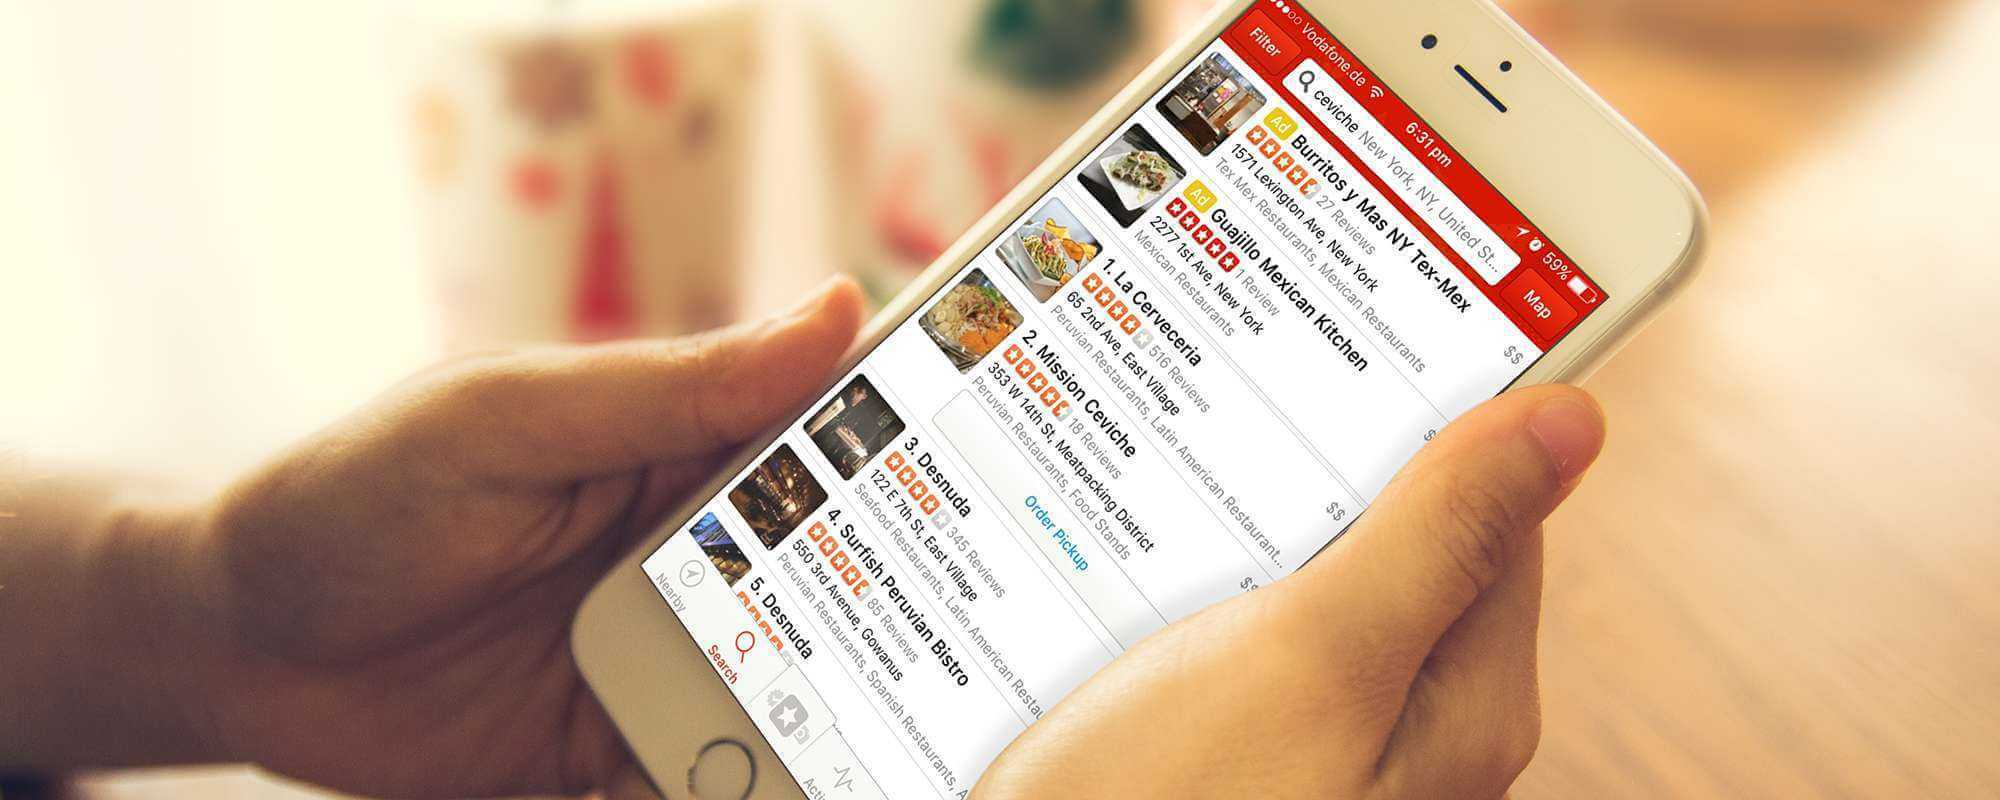 Yelp quietly swaps restaurant phone numbers with Grubhub-affiliated numbers